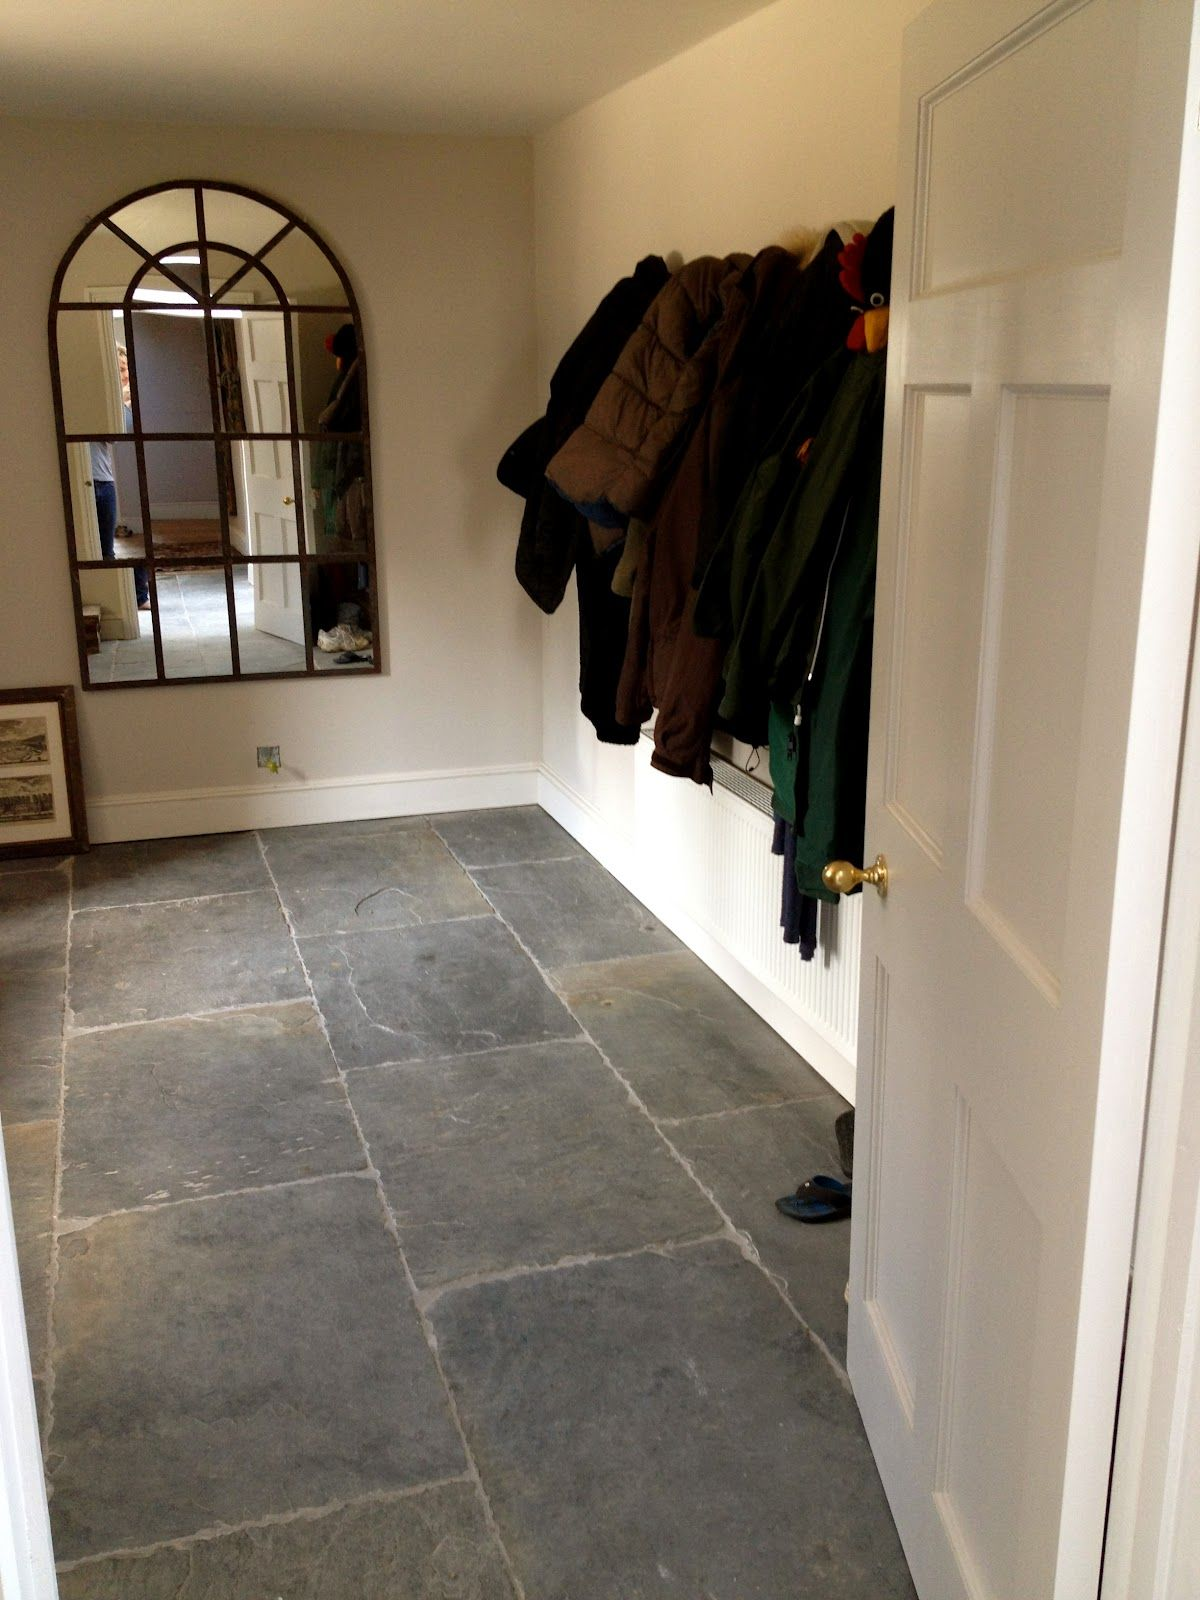 Slate flooring pictures of rooms new back extension boot room slate flooring pictures of rooms new back extension boot room with old slate flooring doublecrazyfo Image collections